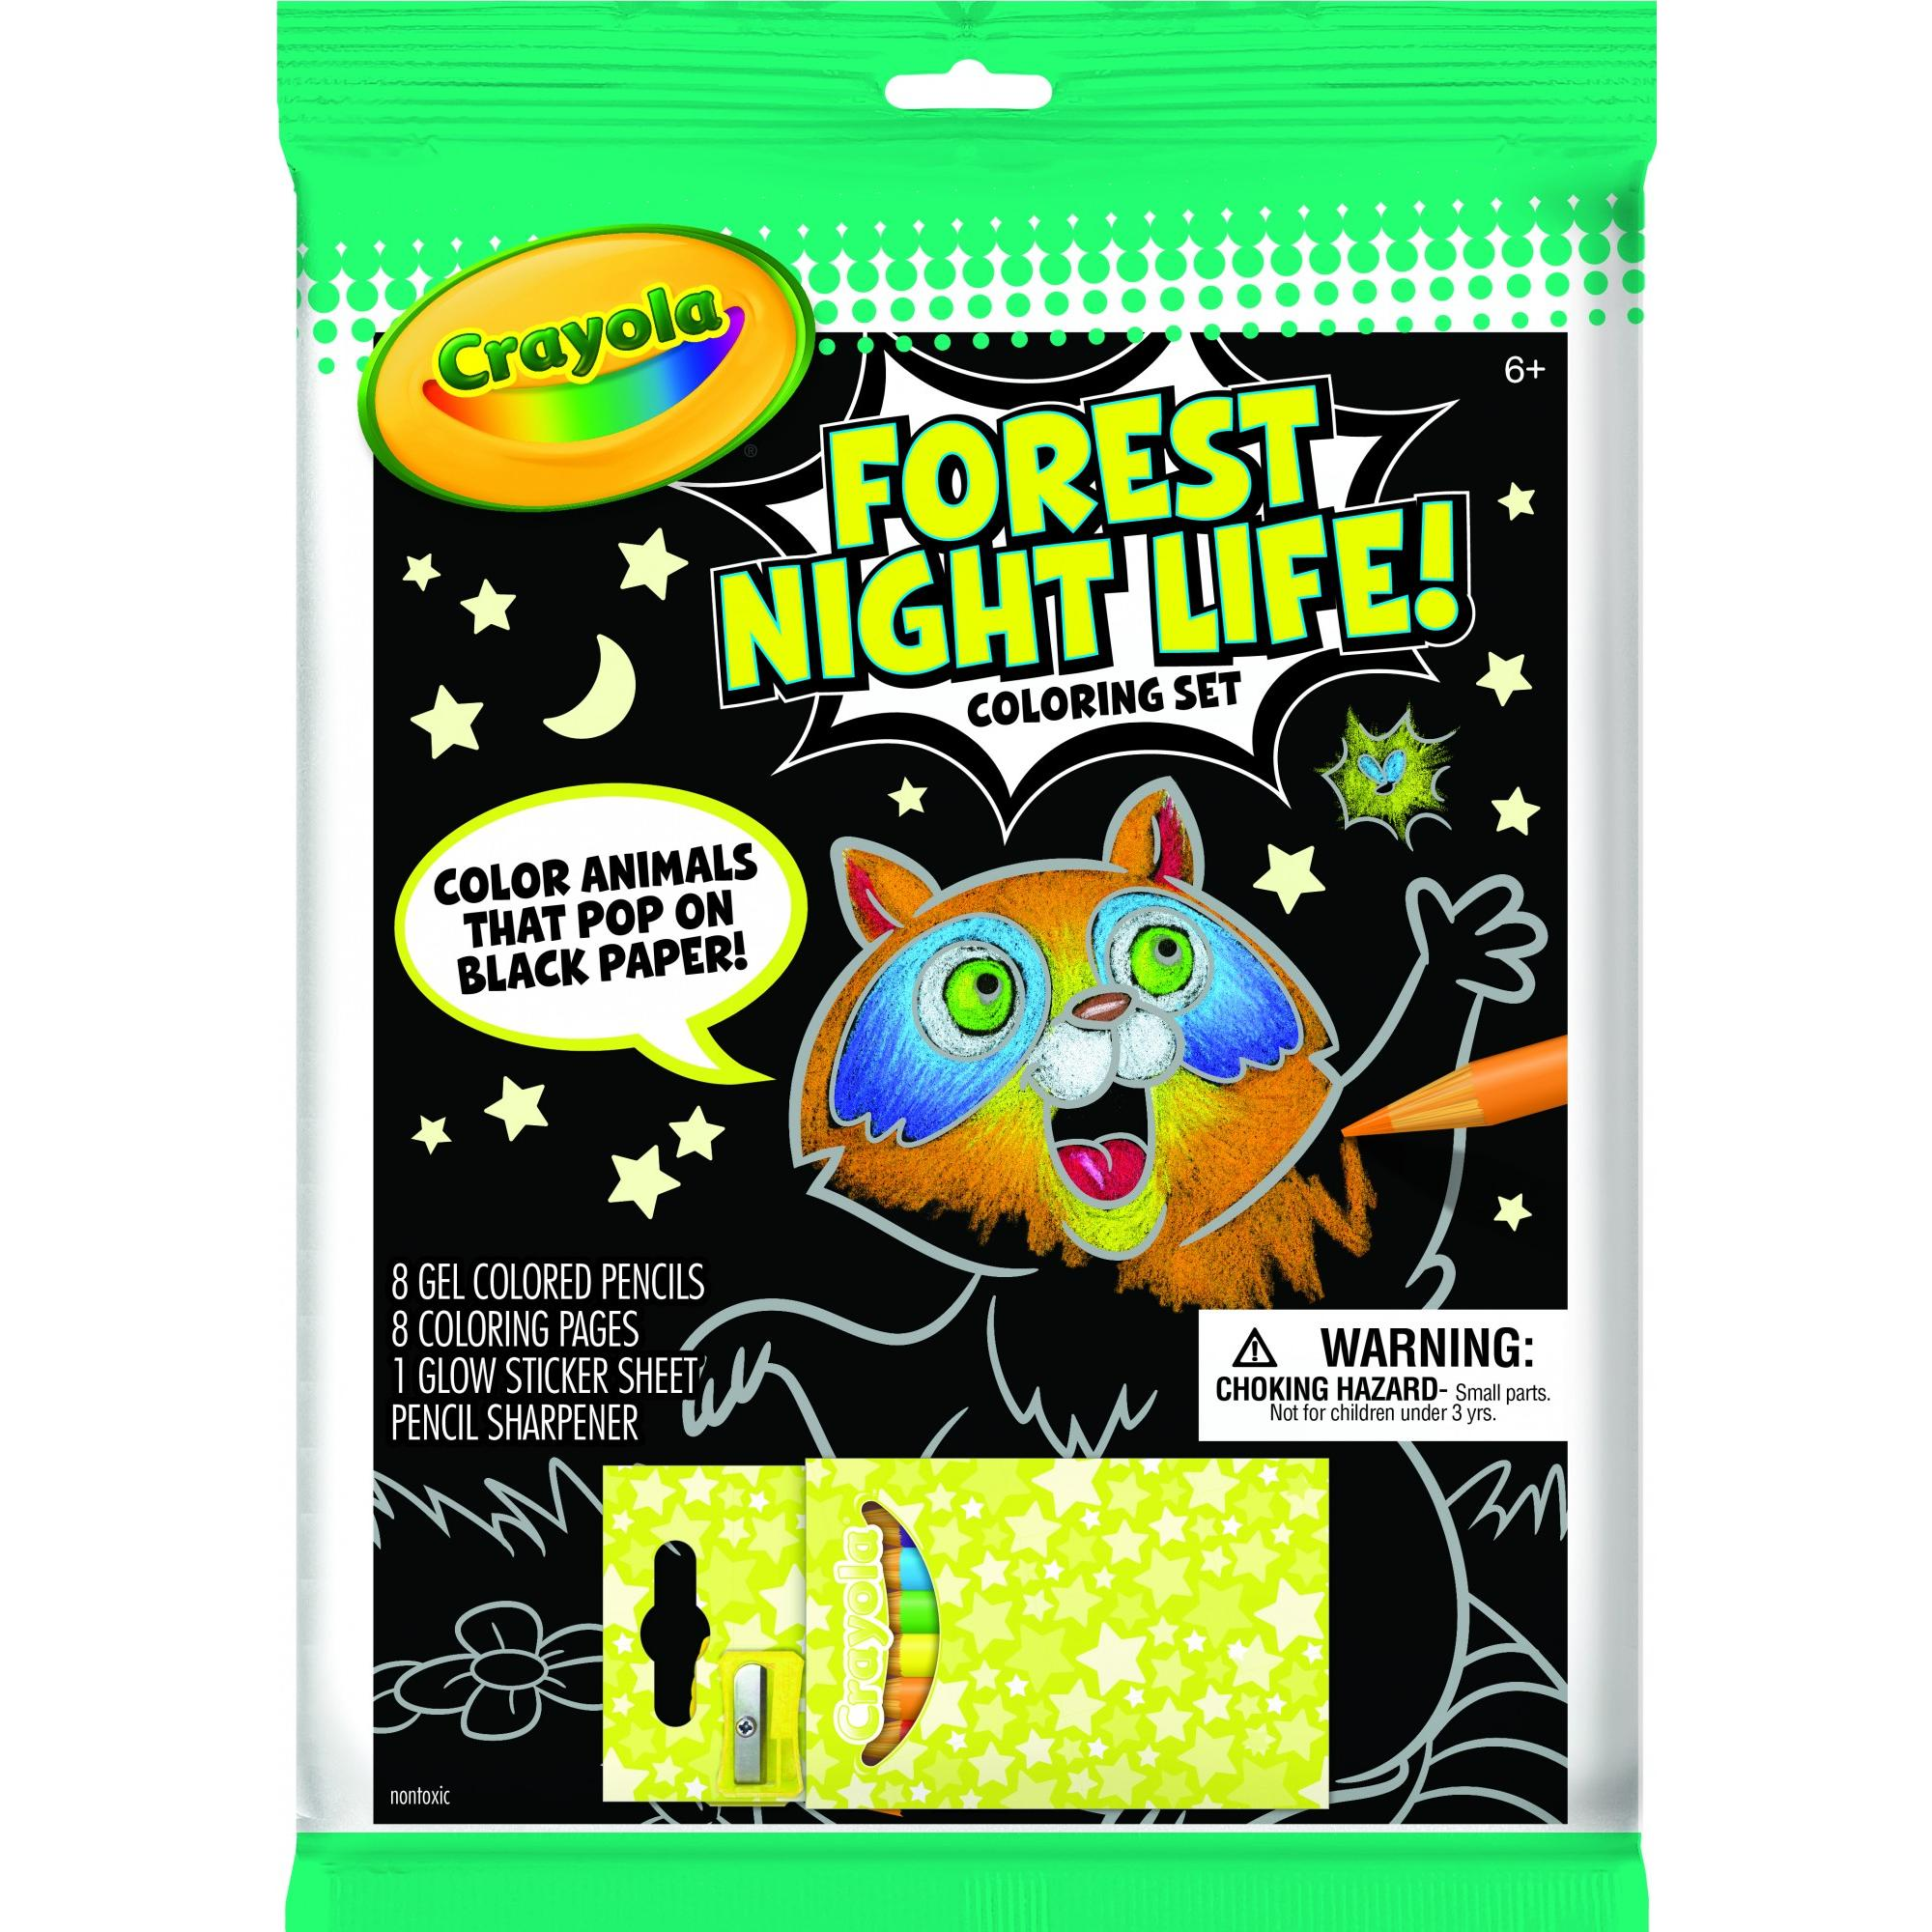 Crayola Forest Night Life Art Set, Coloring Kit For Kids, 16 Pieces